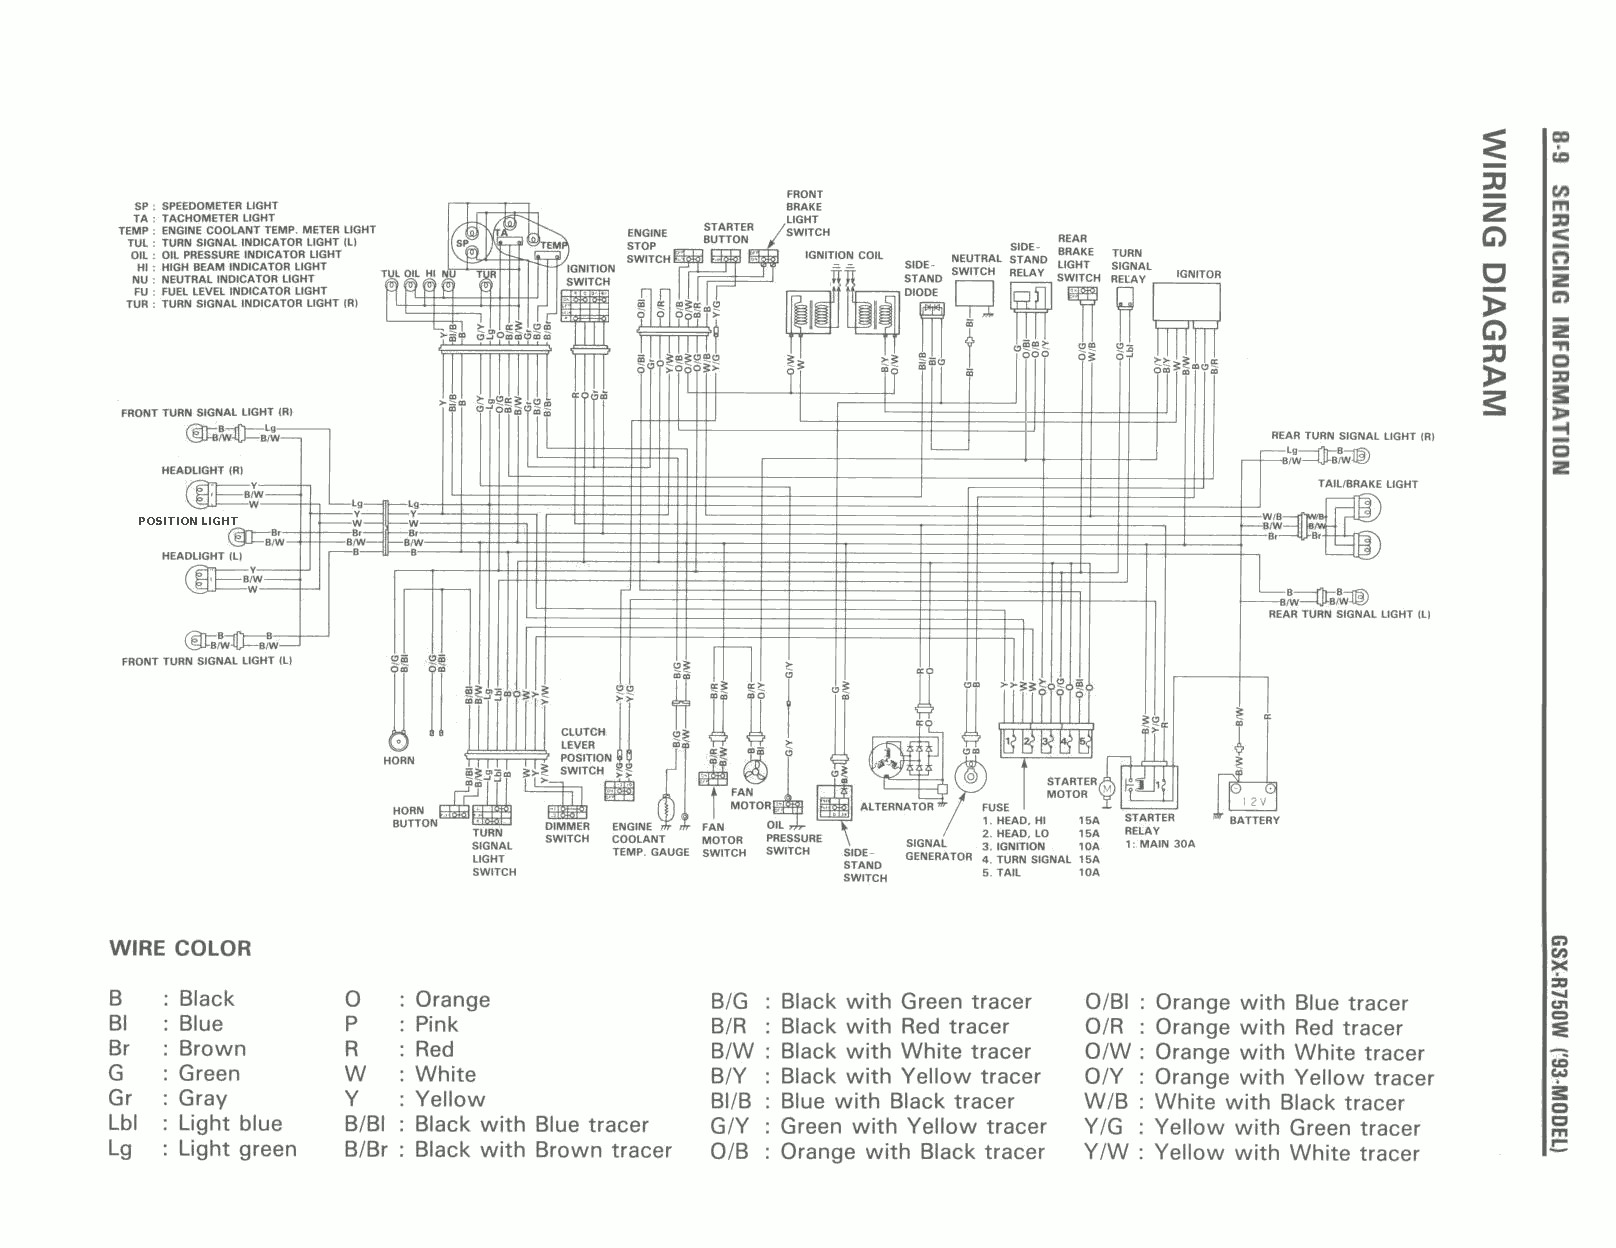 GSXR750 1993 wiring diagram?resize\\\\\\\\\\\\\\\\\\\\\\\\\\\\\\\\\\\\\\\\\\\\\\\\\\\\\\\\\=665%2C514 yamaha ttr wiring diagram wiring diagrams ttr 250 wiring diagram at crackthecode.co